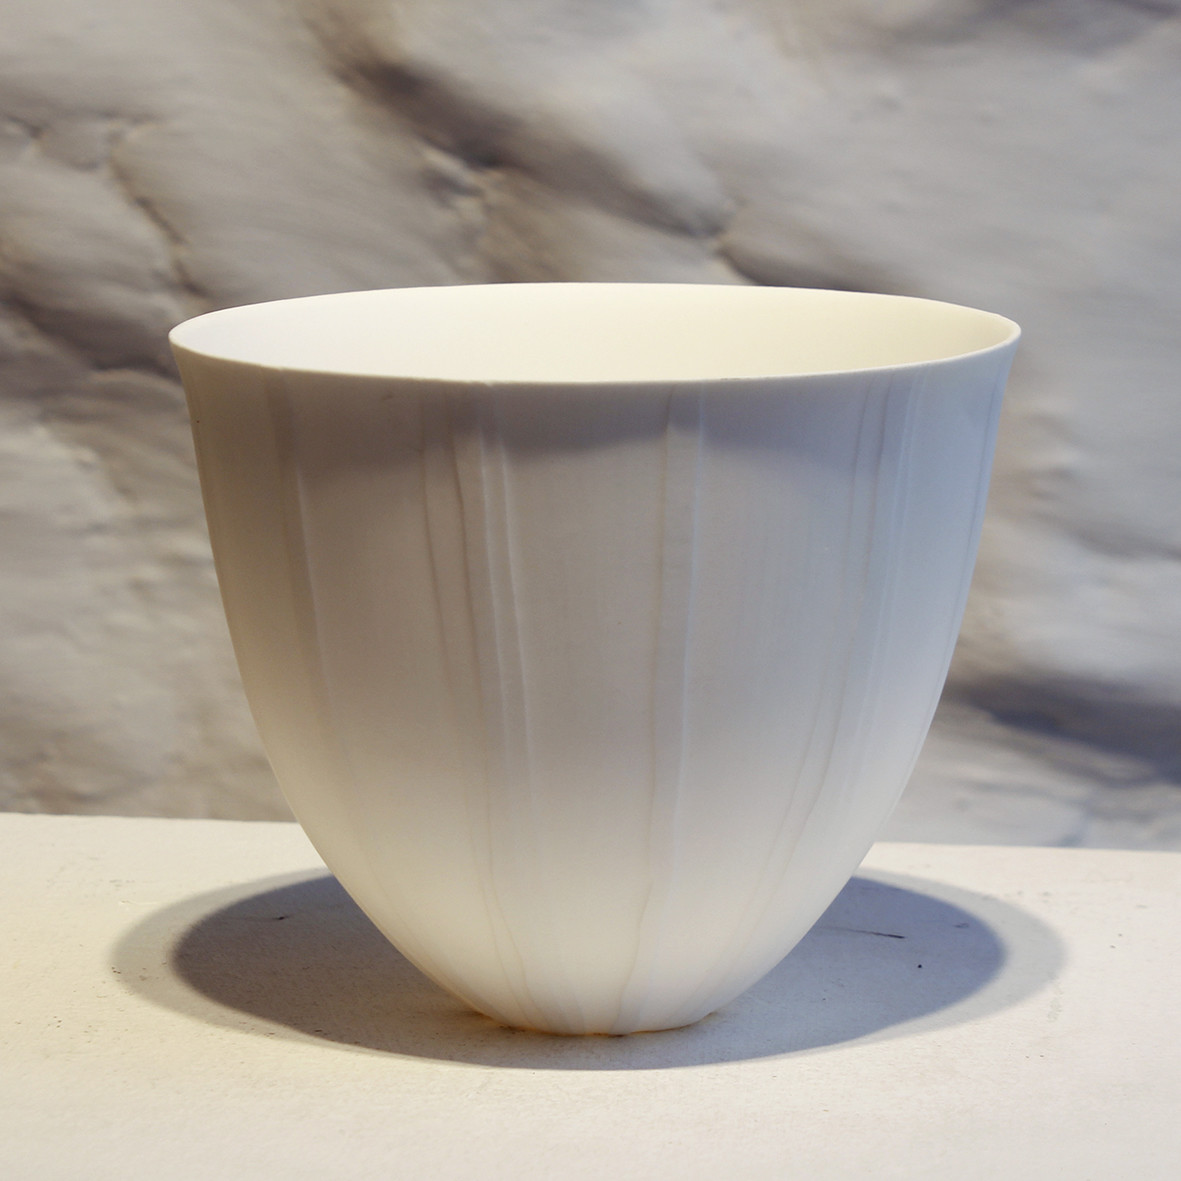 "<span class=""link fancybox-details-link""><a href=""/artists/60-sasha-wardell/works/6014-sasha-wardell-veil-small-bowl-2018/"">View Detail Page</a></span><div class=""artist""><strong>Sasha Wardell</strong></div> <div class=""title""><em>Veil  Small Bowl</em>, 2018</div> <div class=""medium"">porcelain ripple</div><div class=""price"">£180.00</div><div class=""copyright_line"">Copyright The Artist</div>"